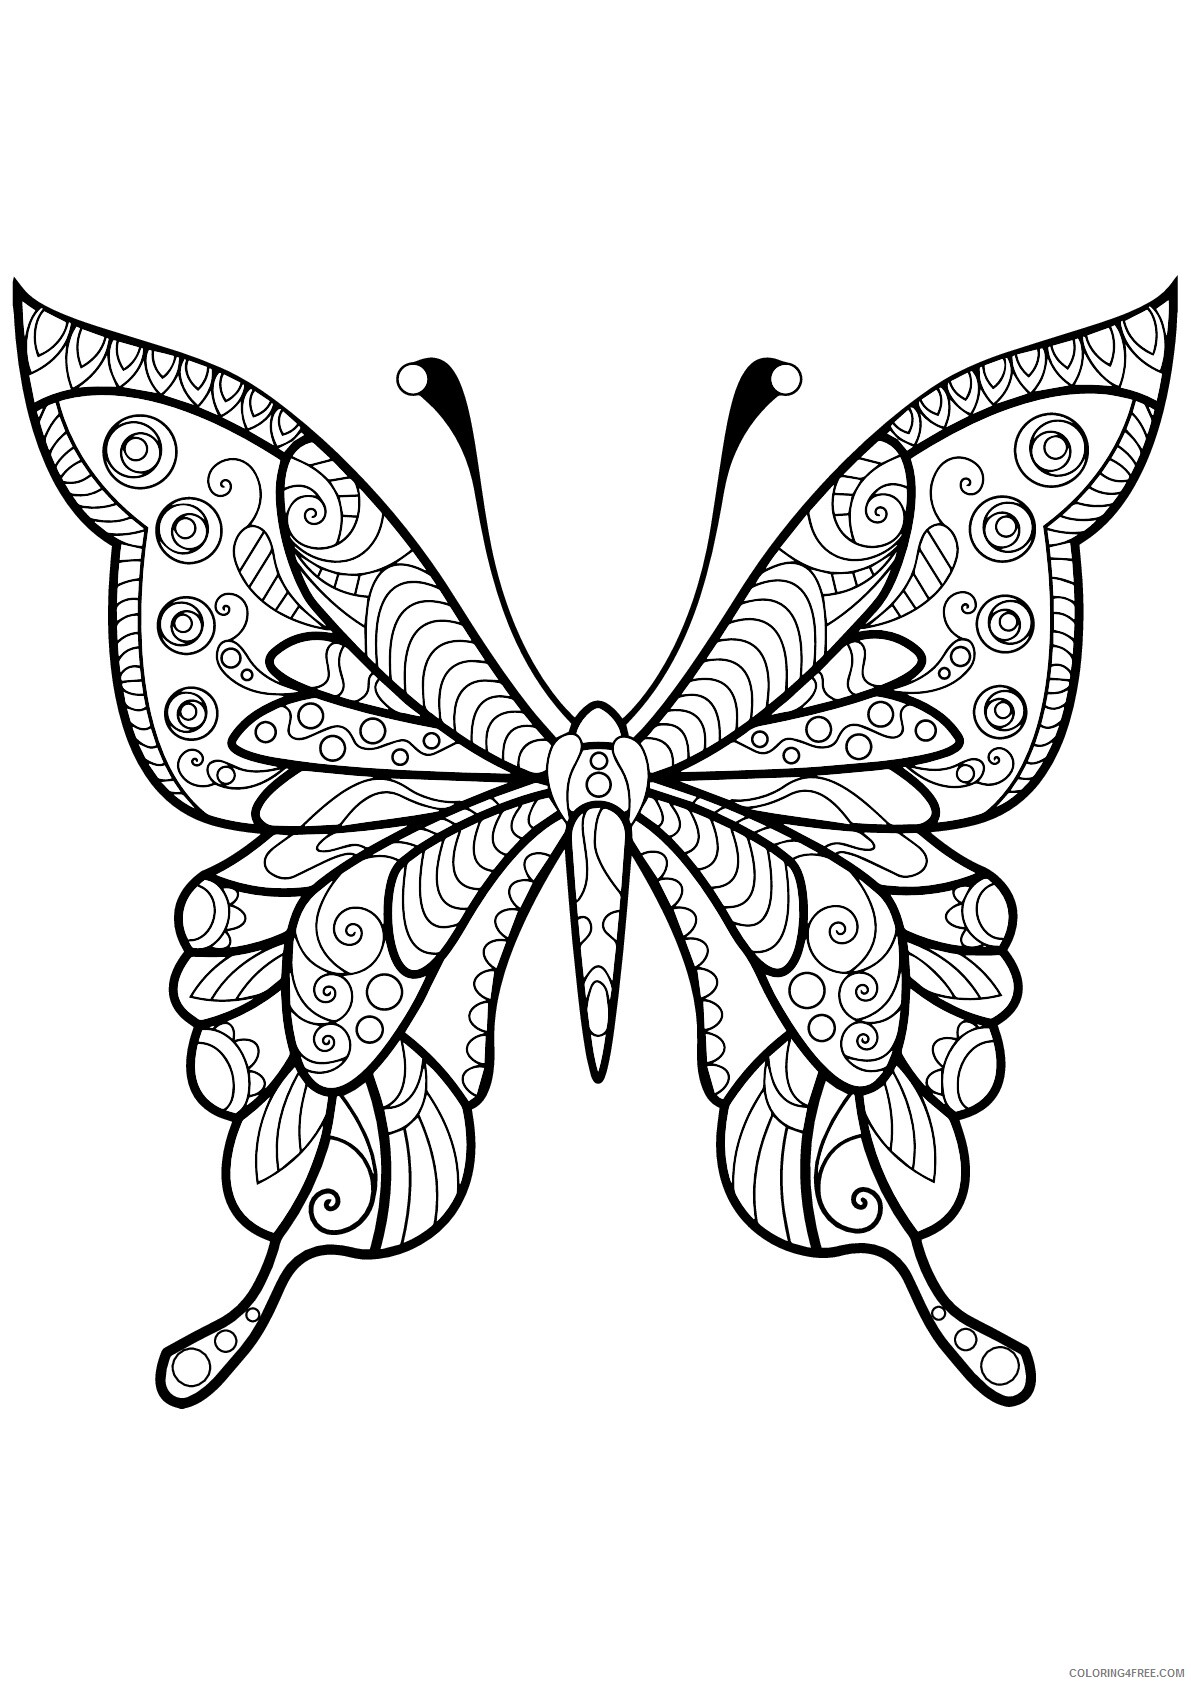 Adult Butterfly Coloring Pages Butterfly Design Adult Printable 2020 188 Coloring4free